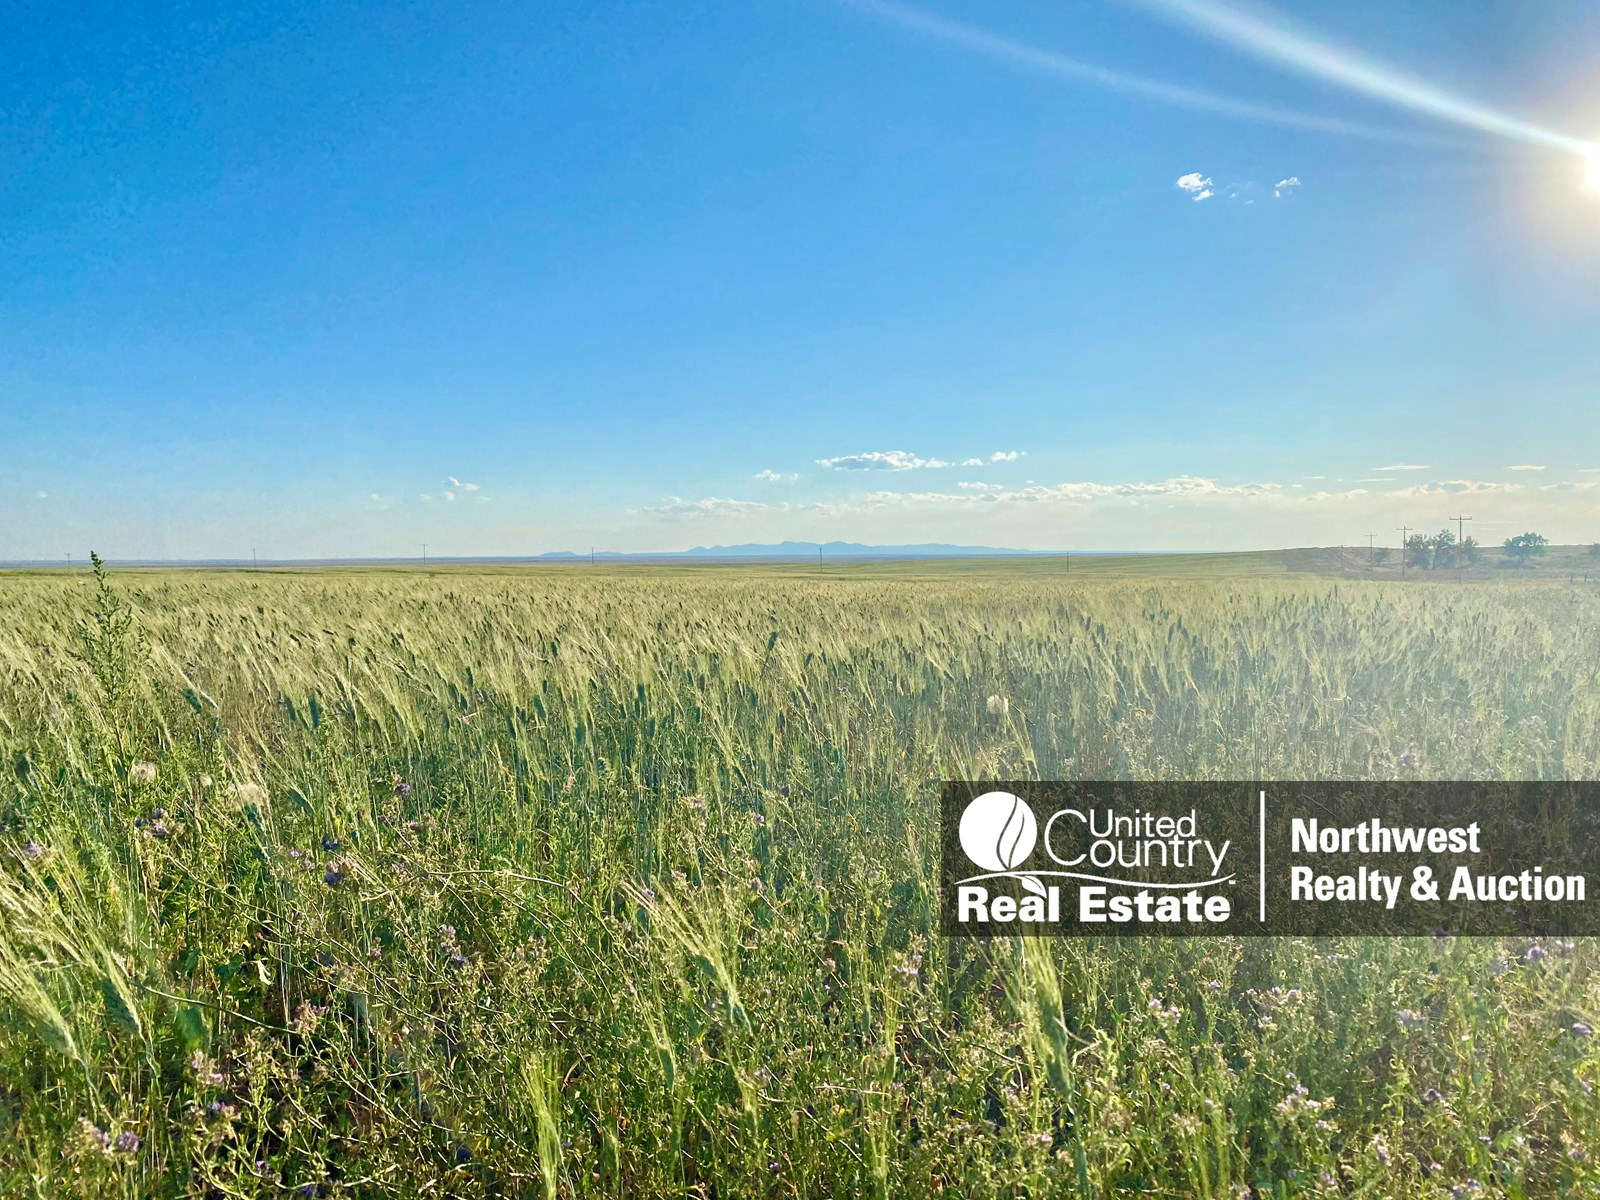 ranches for sale listing image for Organic Farm Ground South Of  Malta